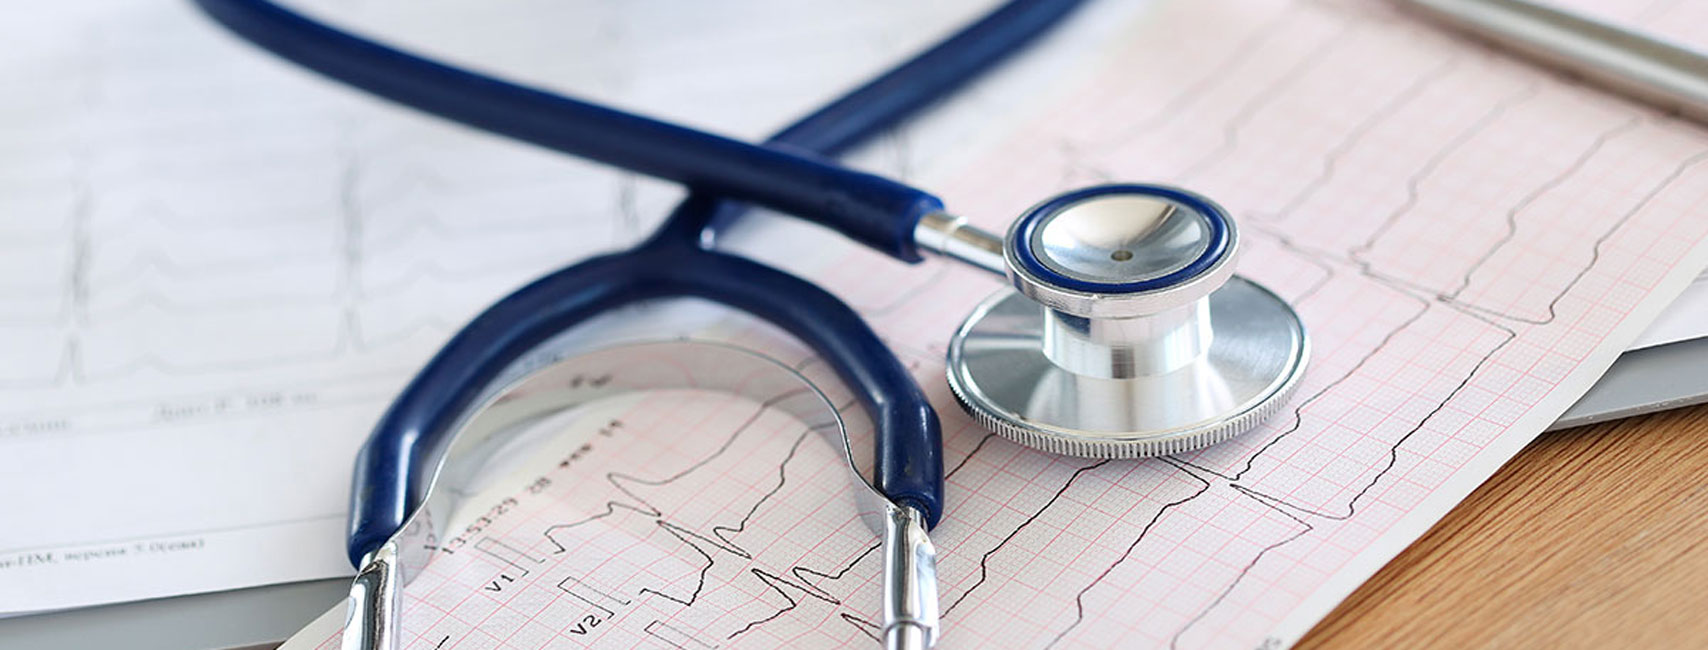 Tips on How to Save on Medical Expenses